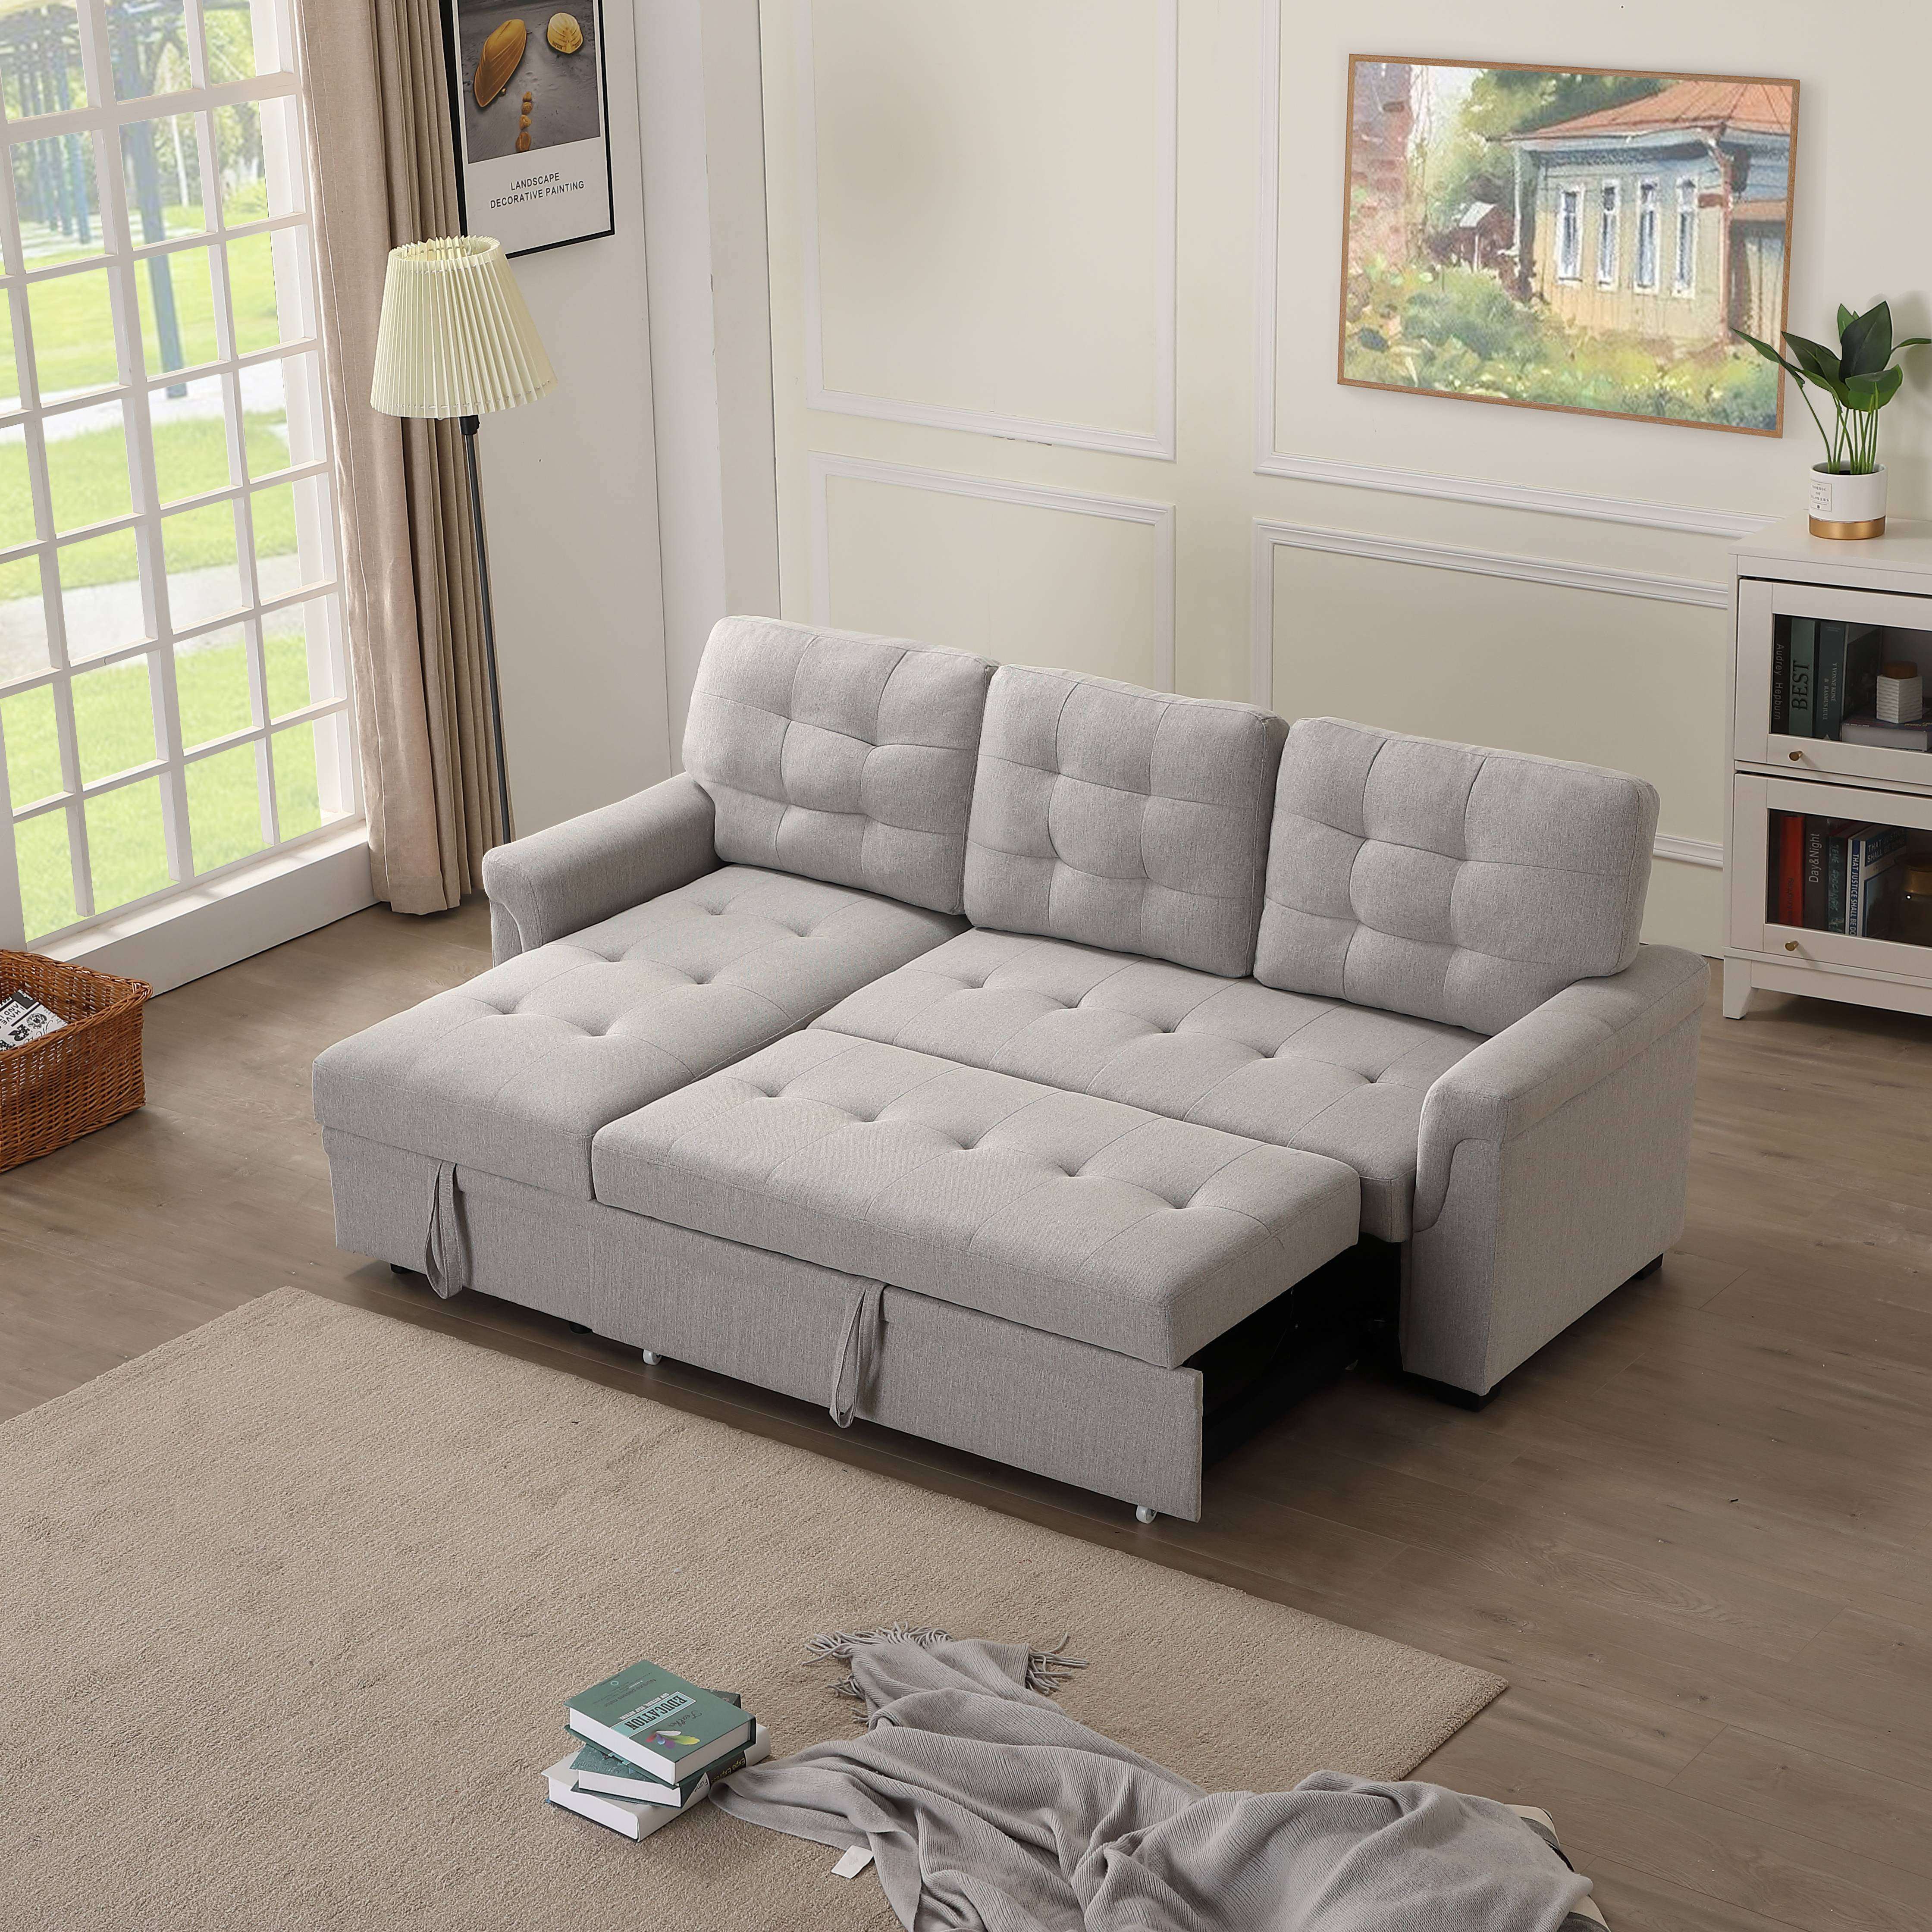 12'' x 12'' x 12.12'' Contemporary Sectional Sofa Bed for Living Room, Soft  Upholstery Sectional Sofas & Couches with Fold Out Twin Size Sleeper, ...